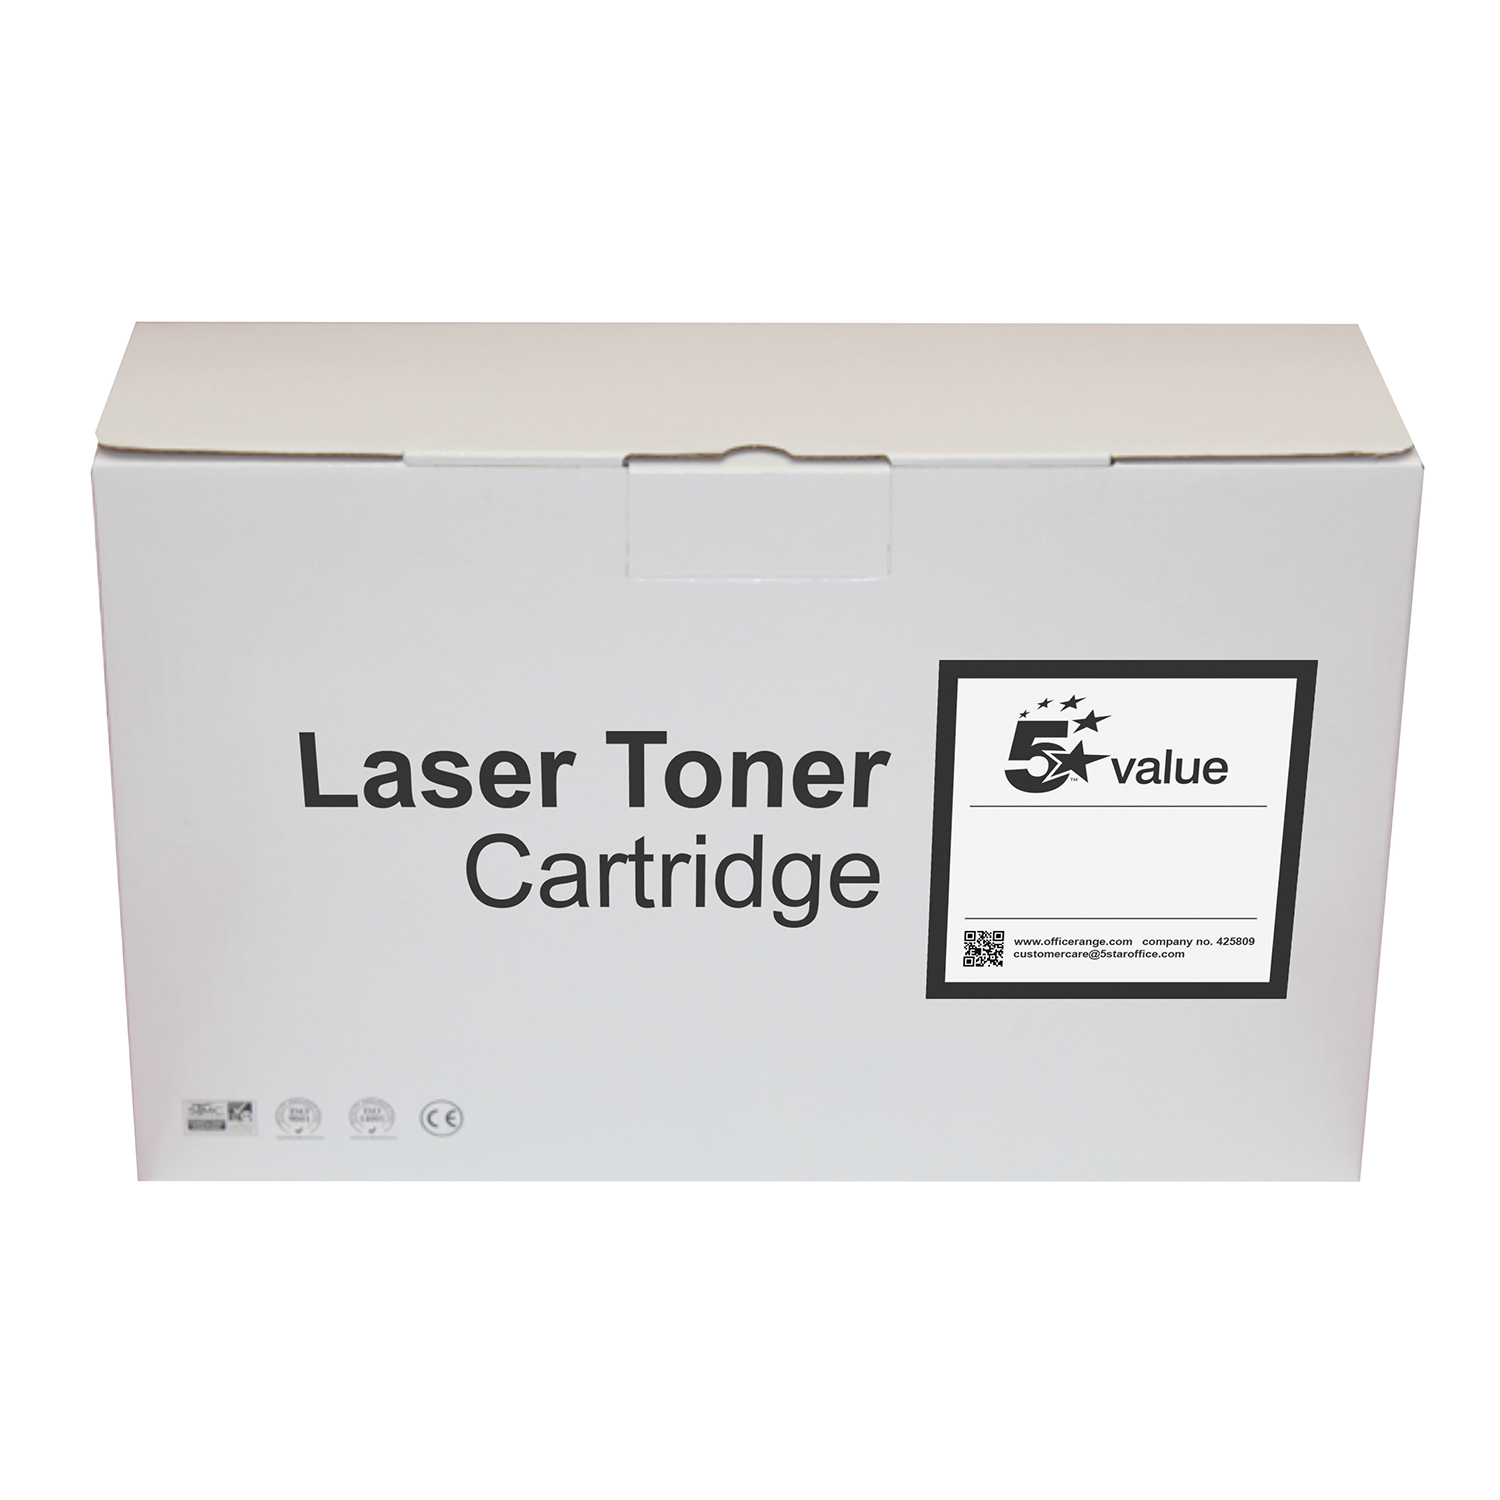 Laser Toner Cartridges 5 Star Value HP 312A Toner Cartridge Cyan CF381A